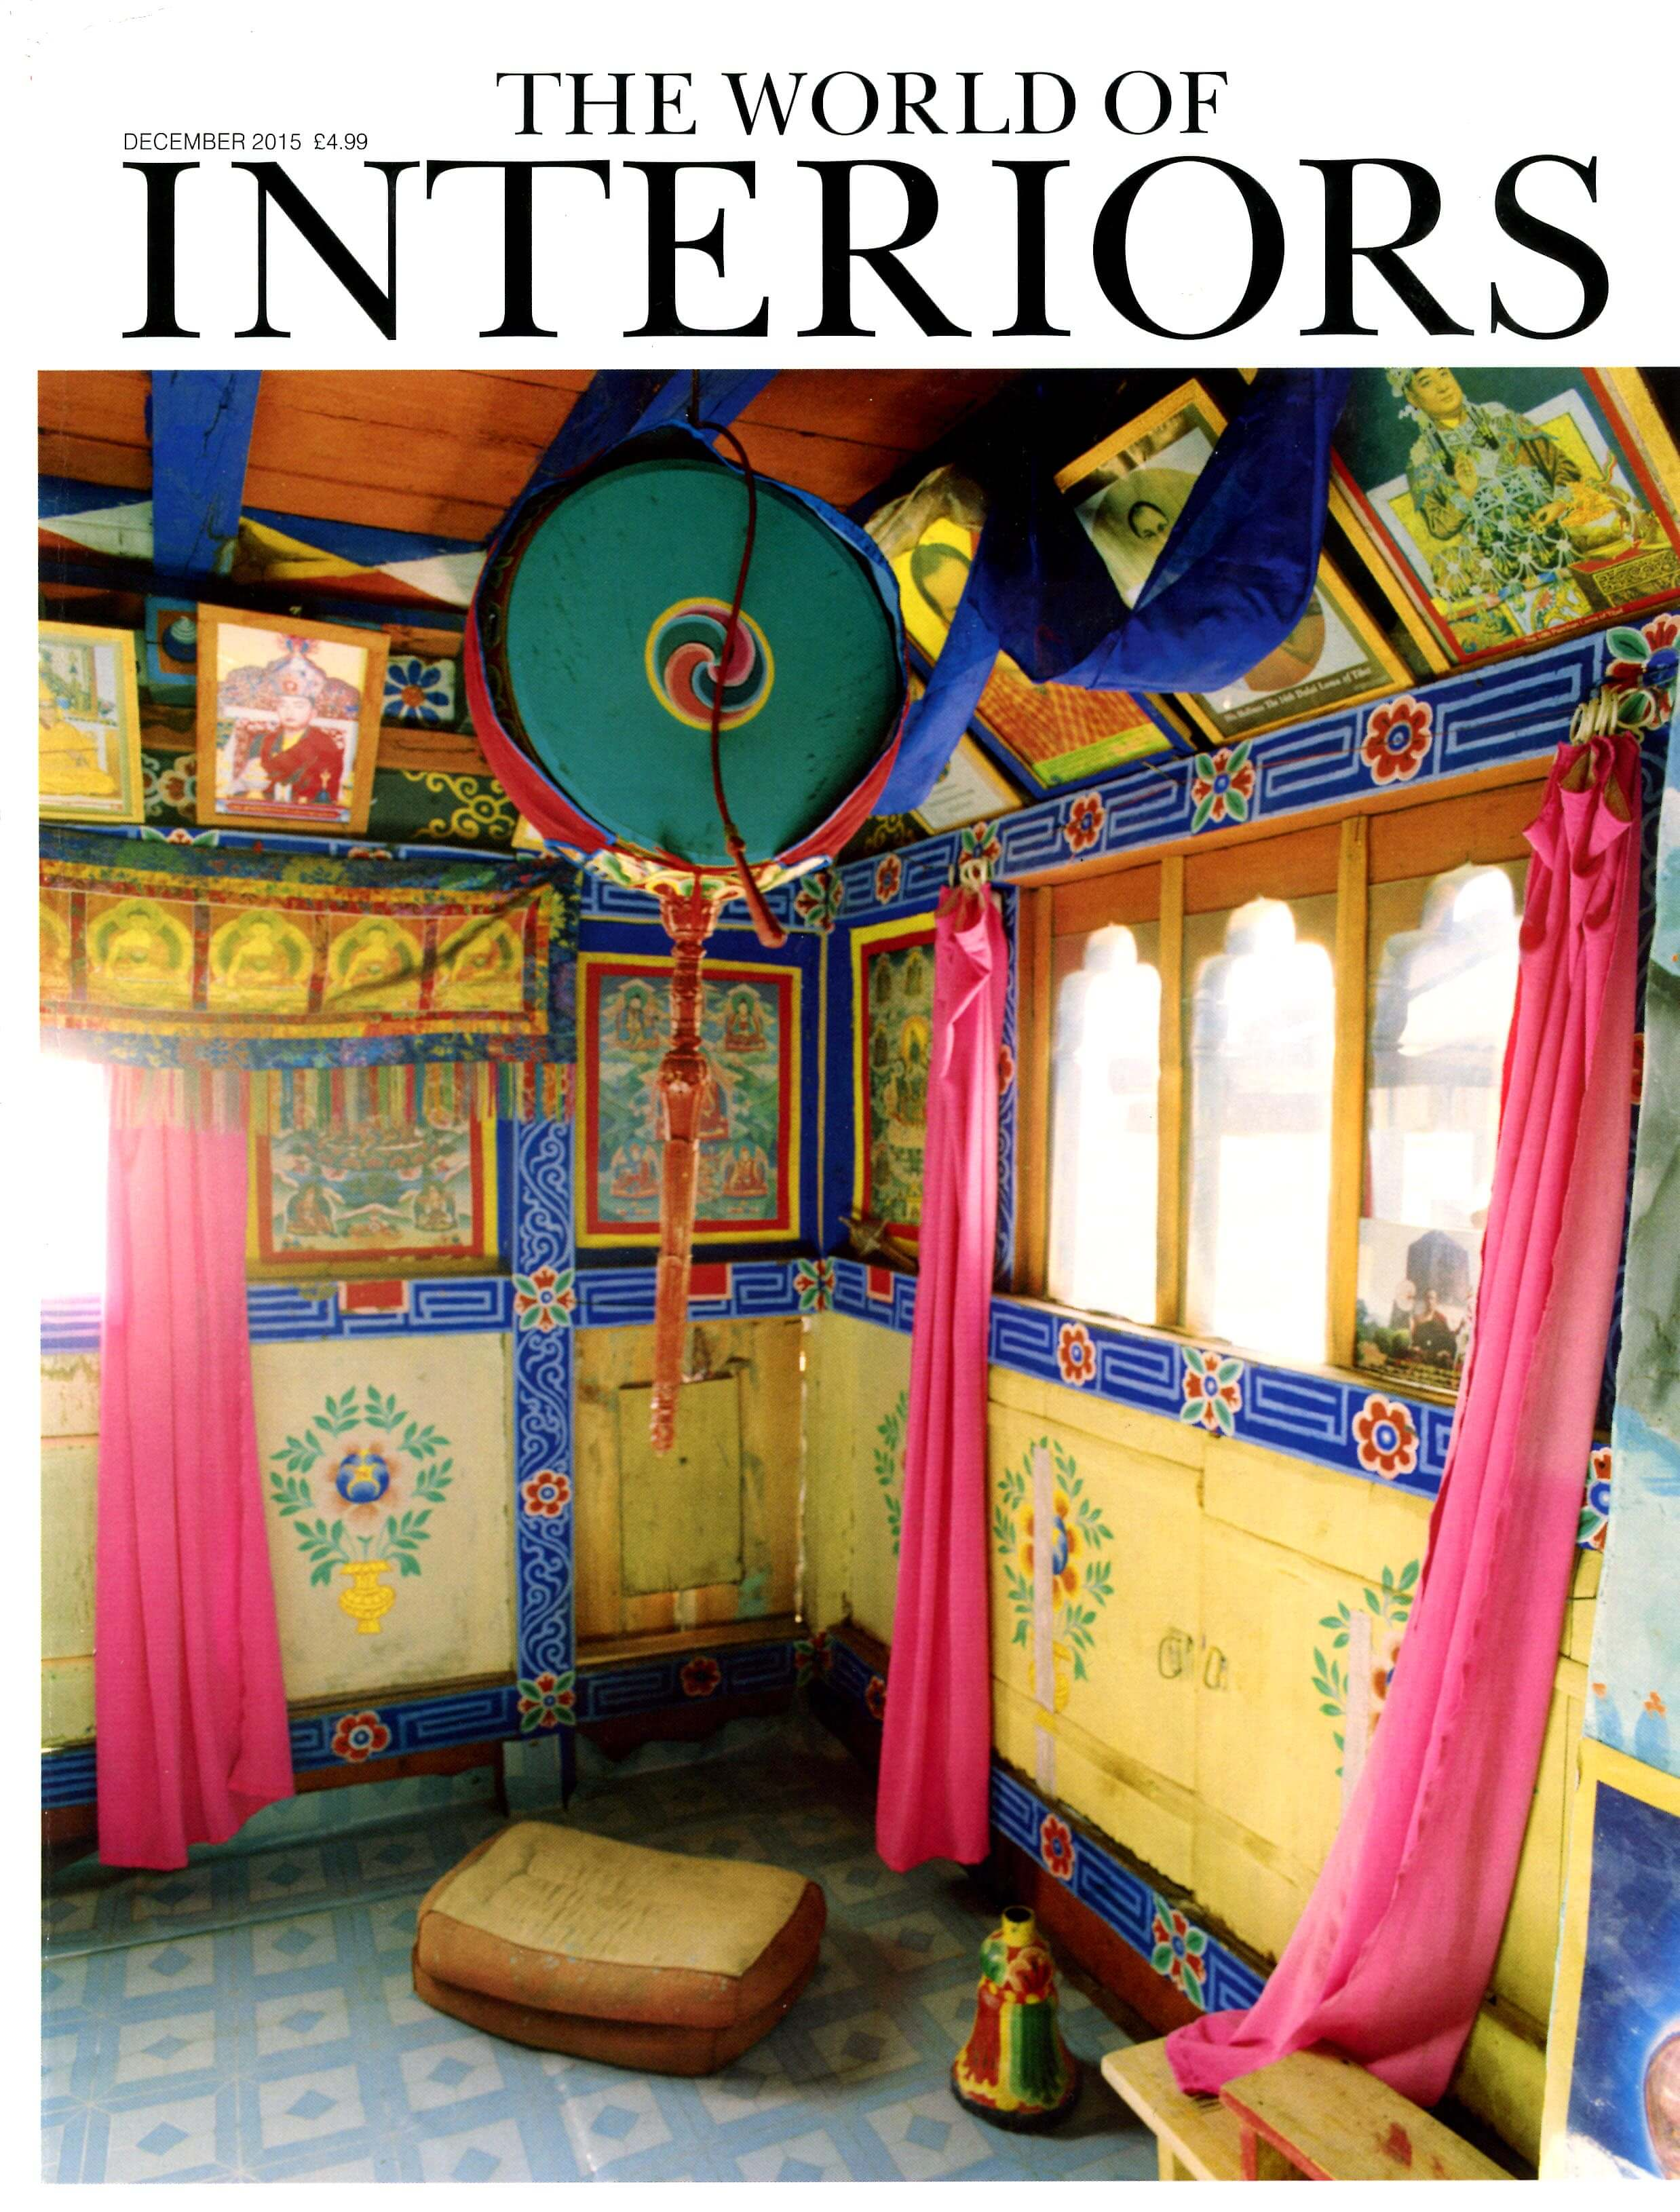 The World of Interiors December 2015